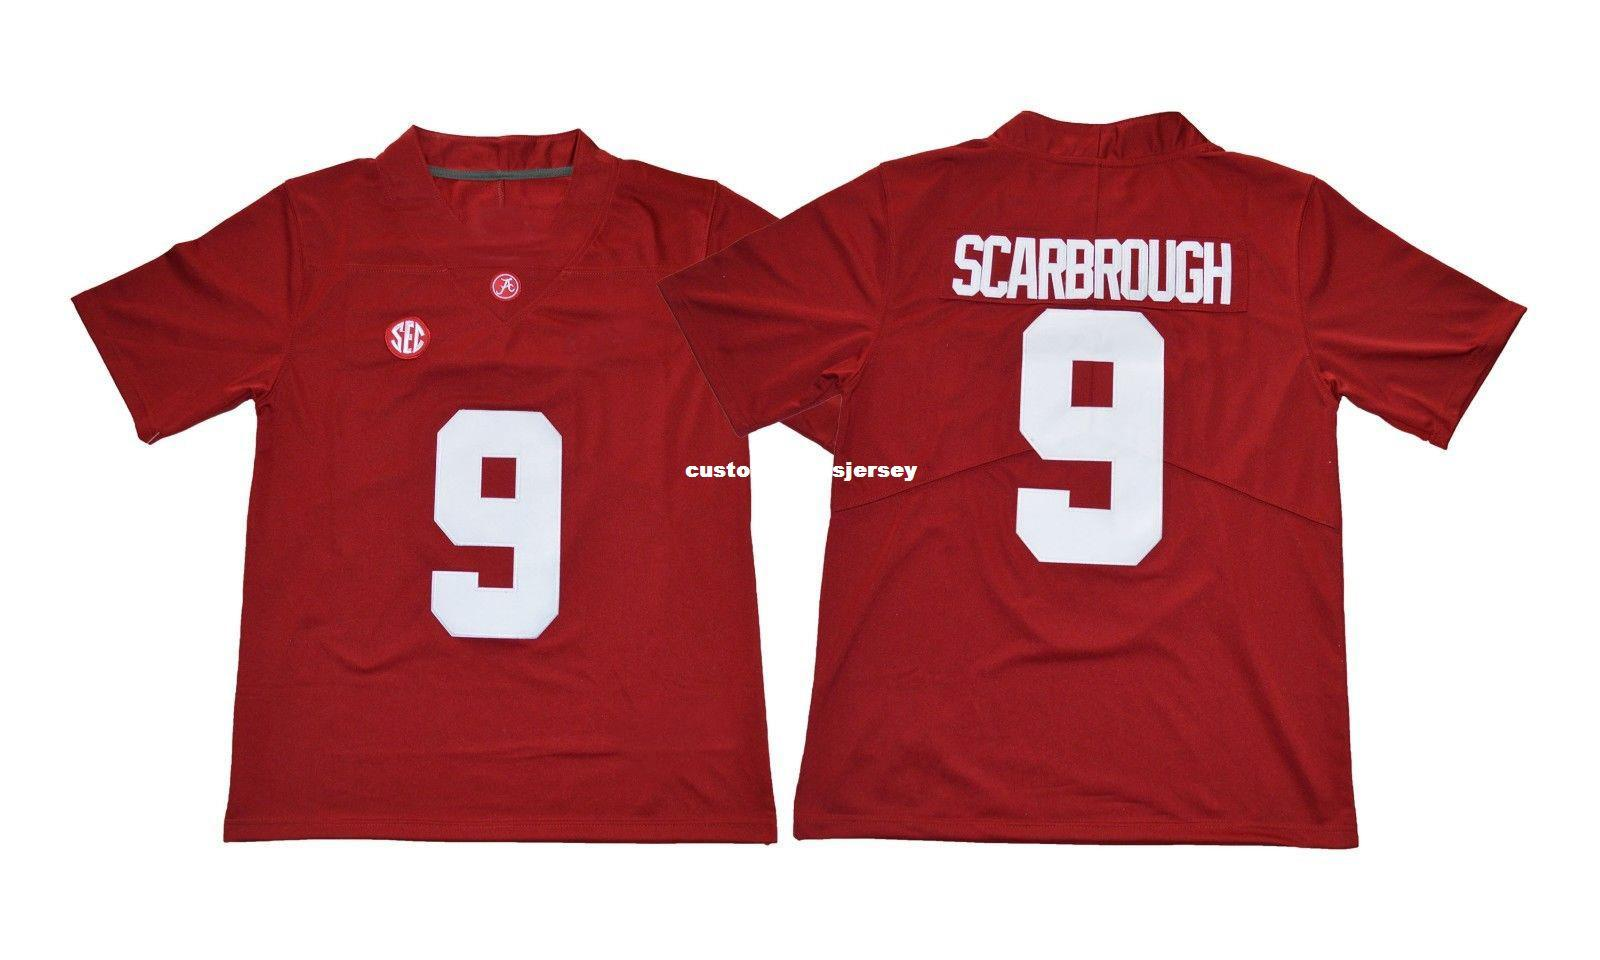 91f1ca404 2019 Cheap Custom Alabama Crimson Tide Bo Scarbrough Red College Football  Jerseys Stitched Customize Any Number Name MEN WOMEN YOUTH XS 5XL From ...